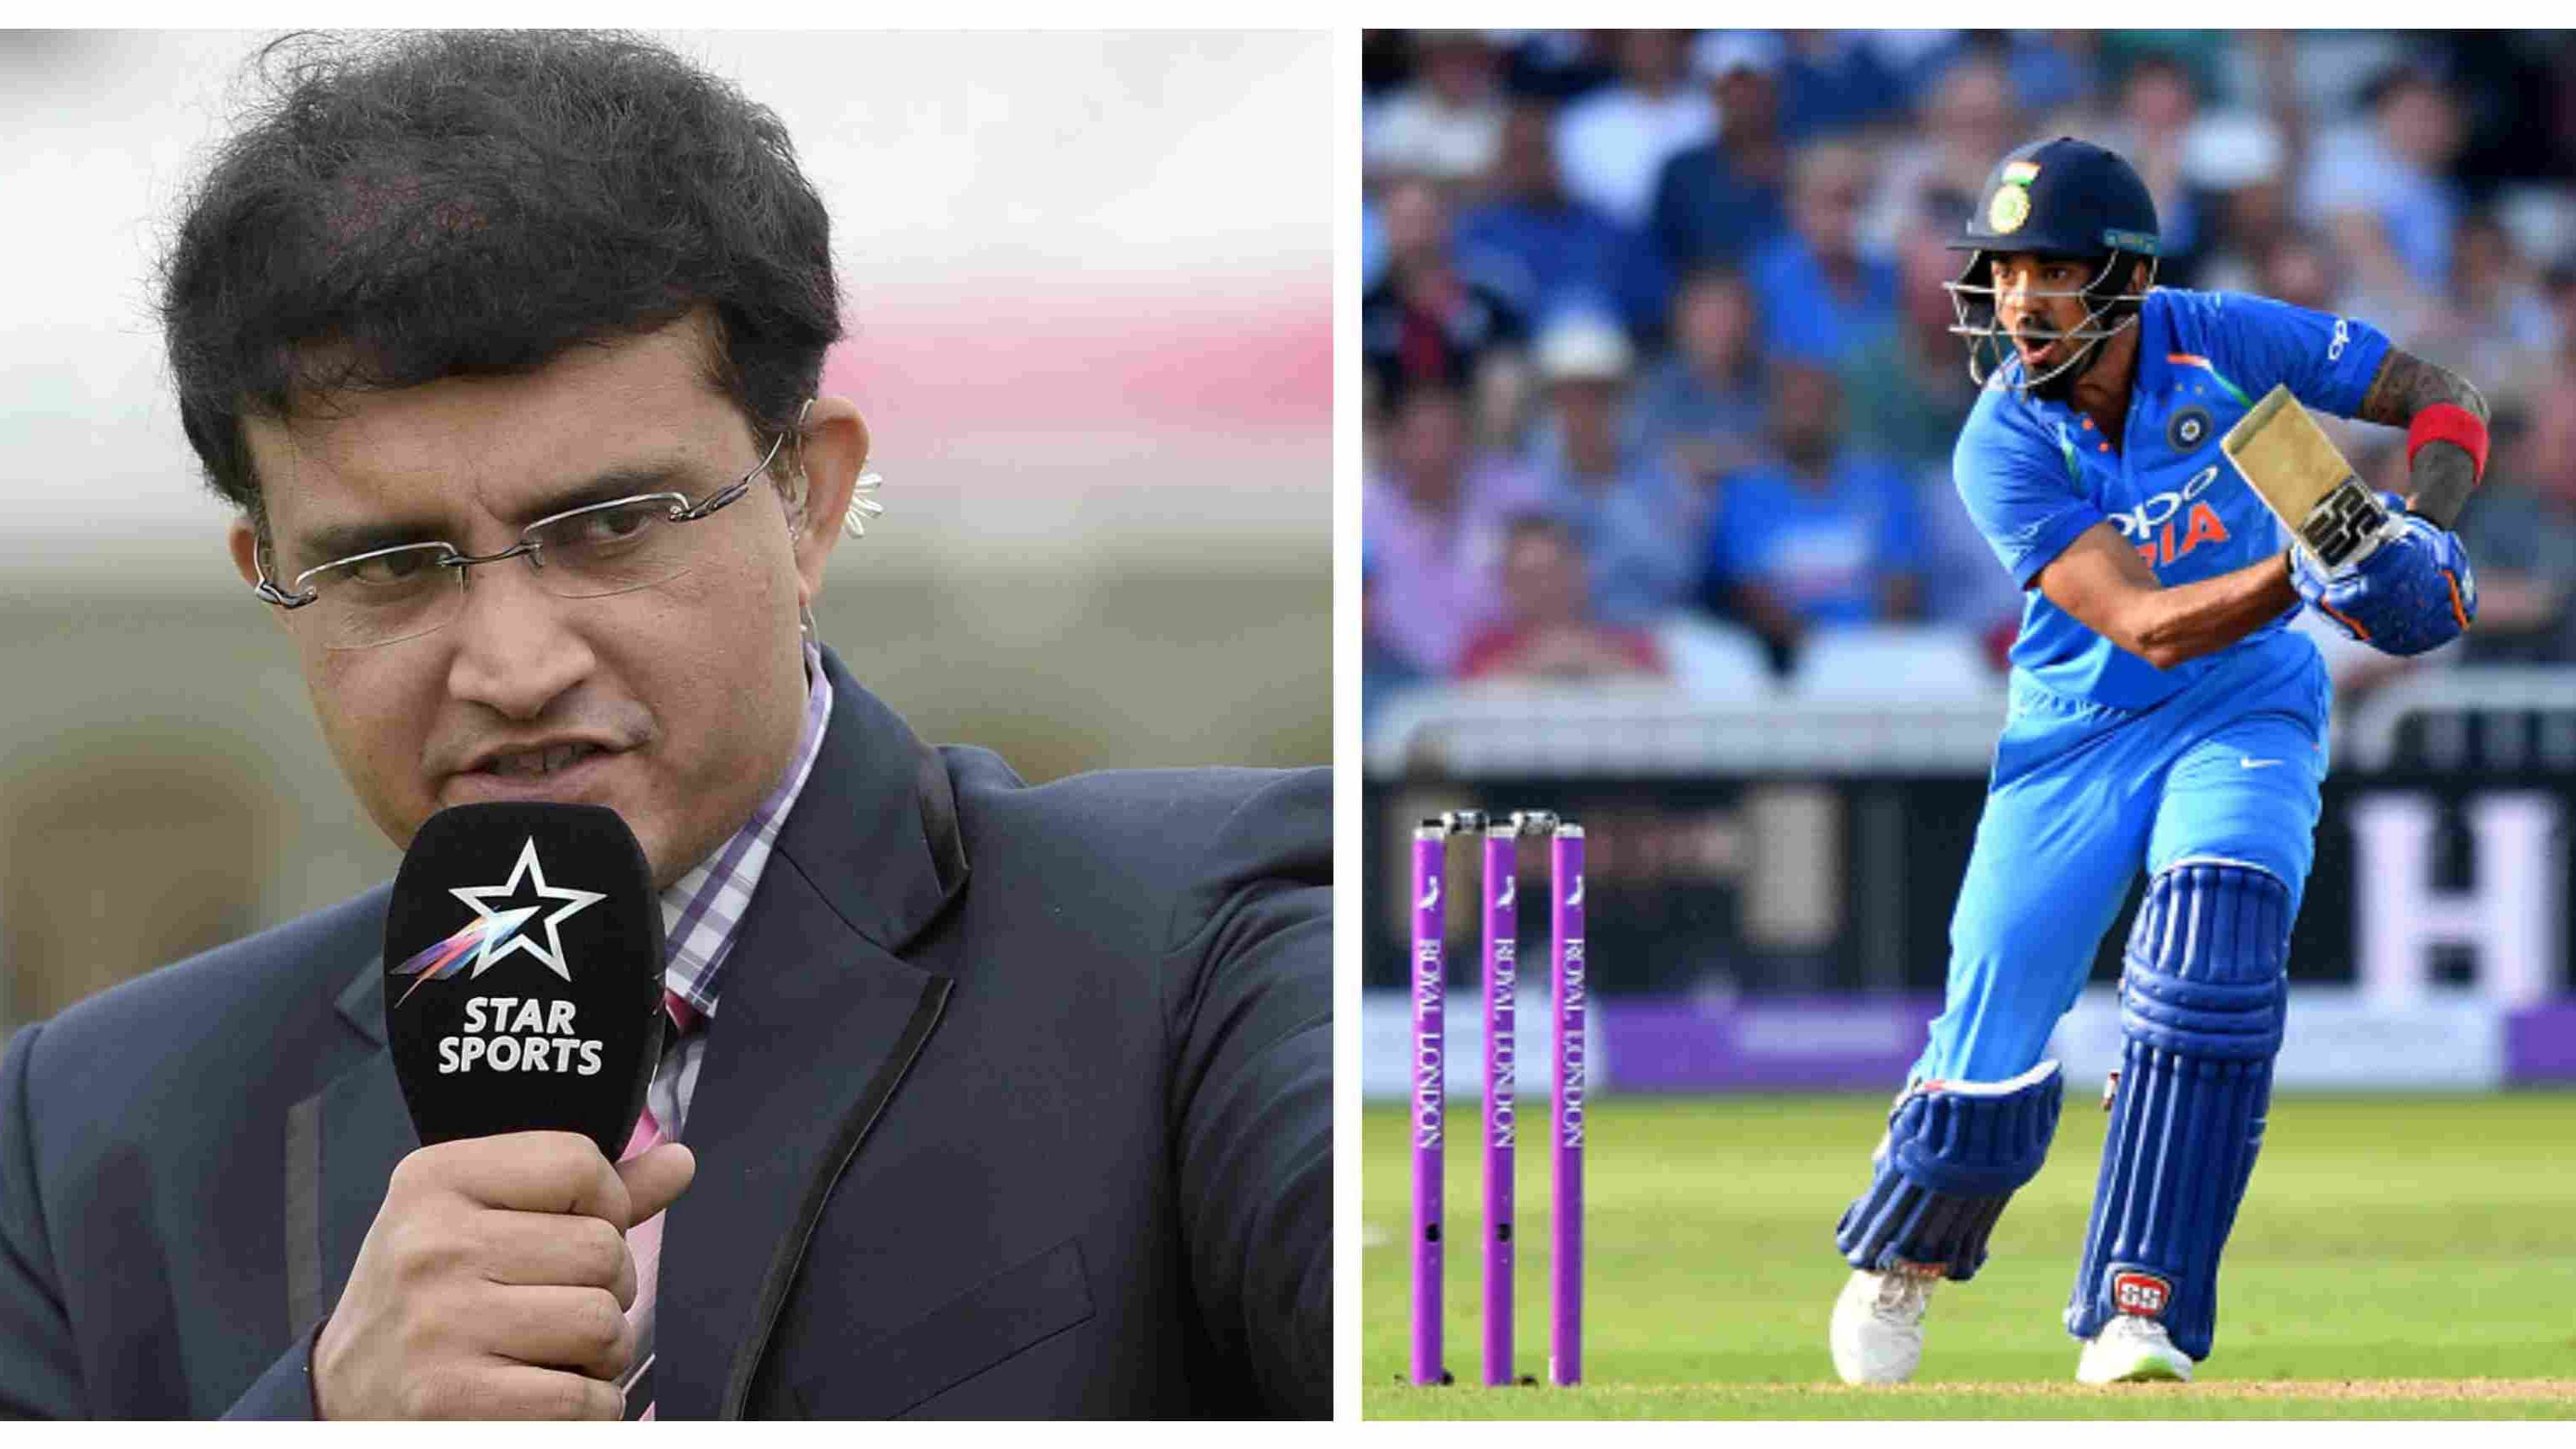 ENG v IND 2018: Sourav Ganguly criticizes India's selection policy, bats for KL Rahul at No.4